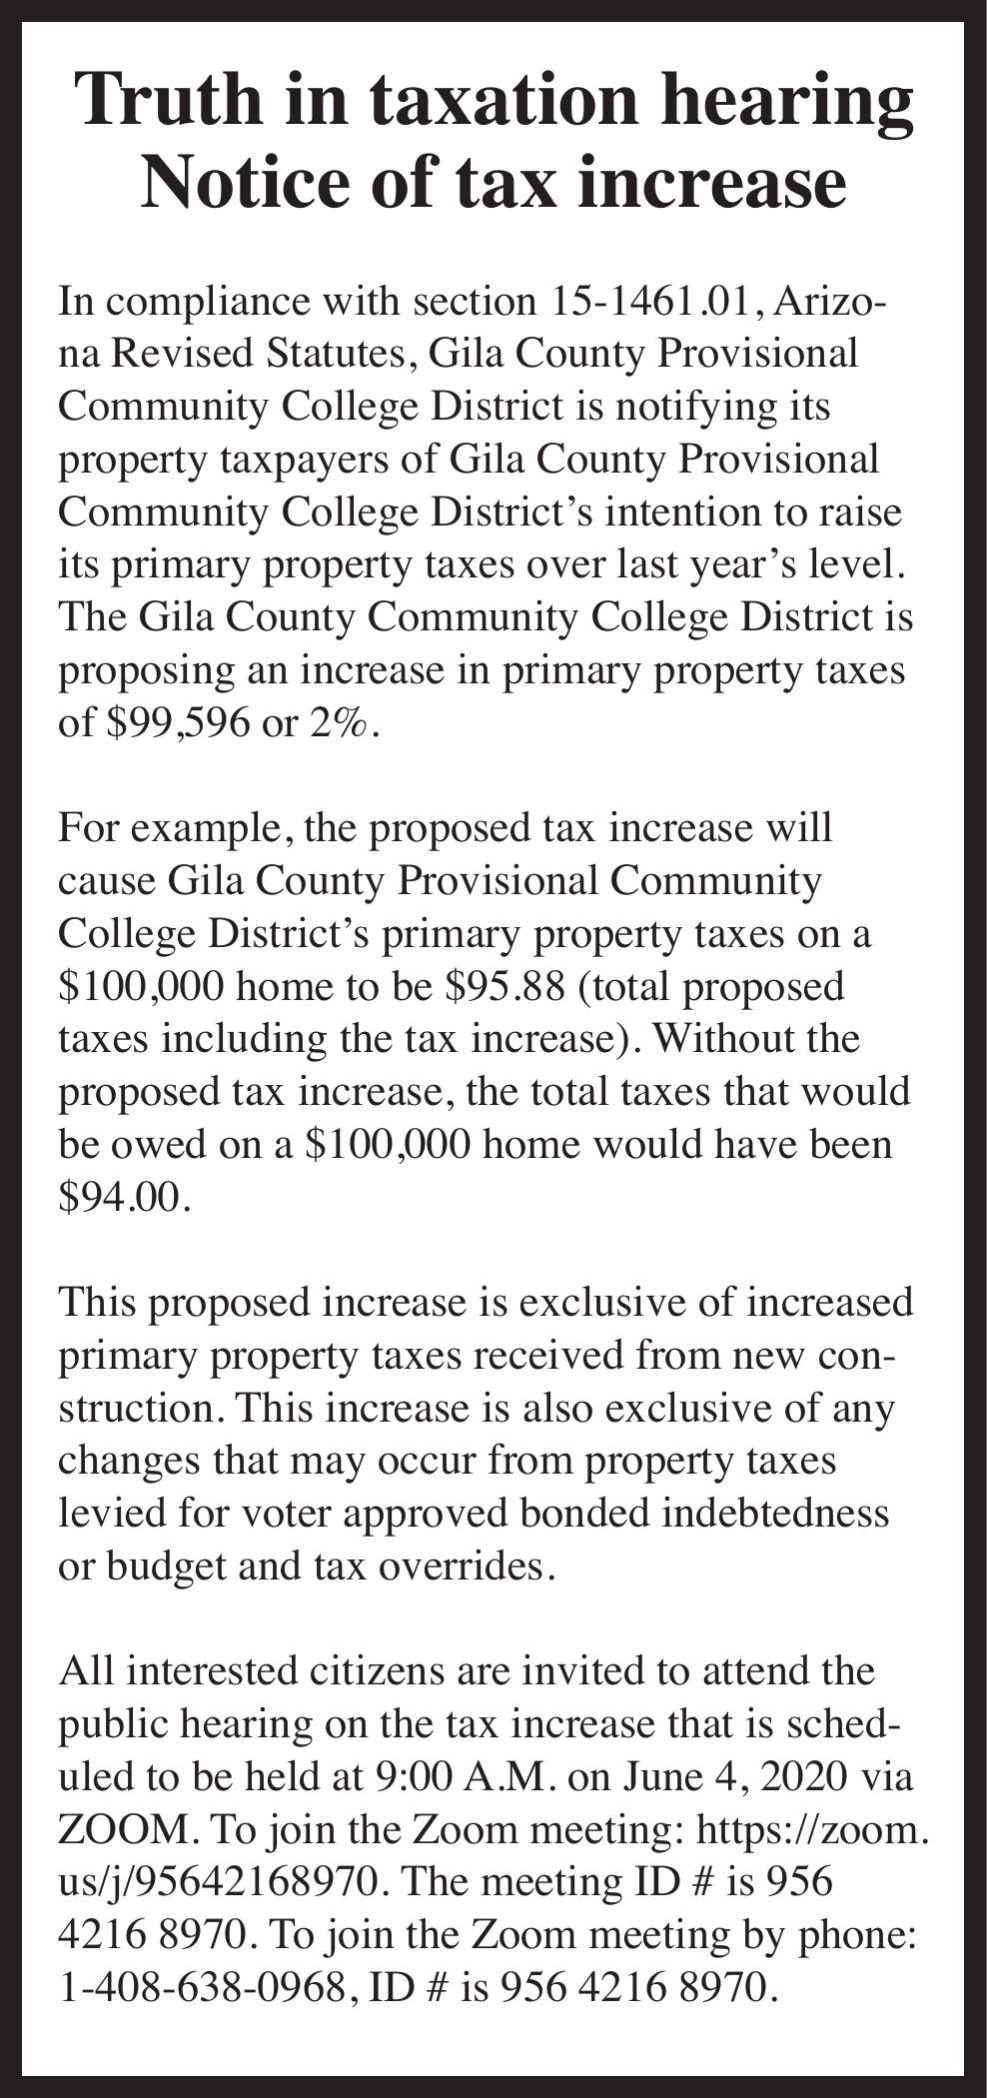 Notice of Tax Increase - Gila County Community College